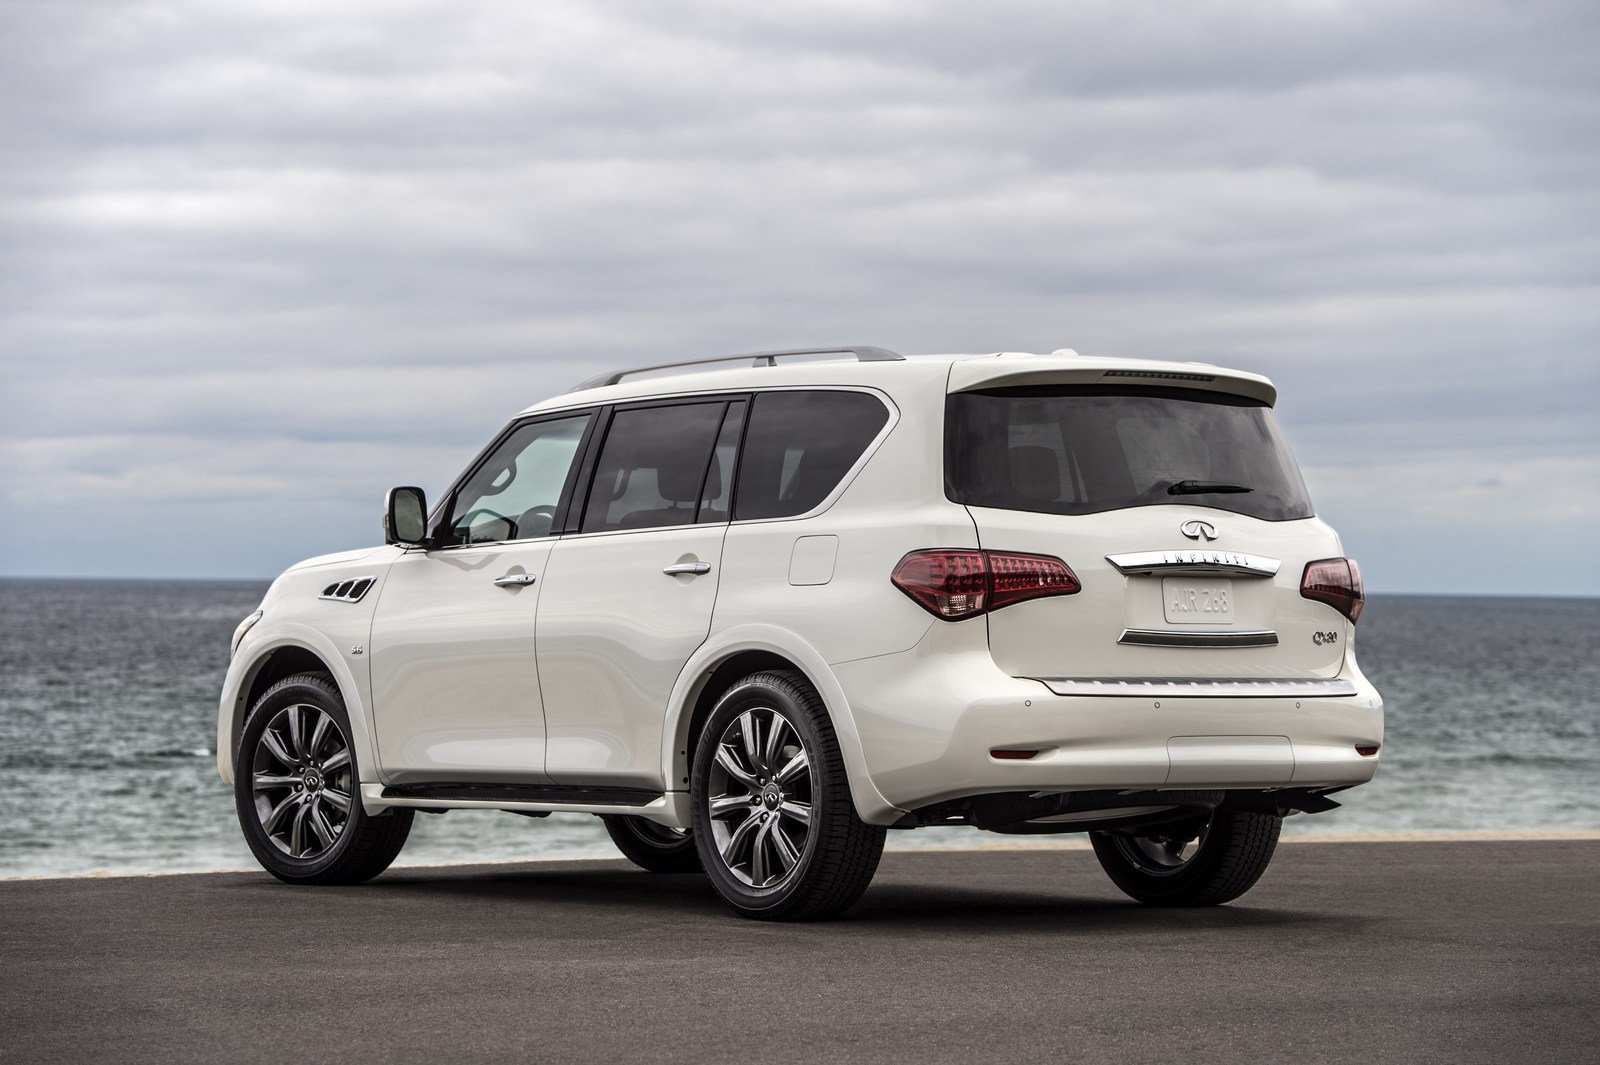 2017 infiniti qx80 signature edition picture 704715 car review top speed. Black Bedroom Furniture Sets. Home Design Ideas